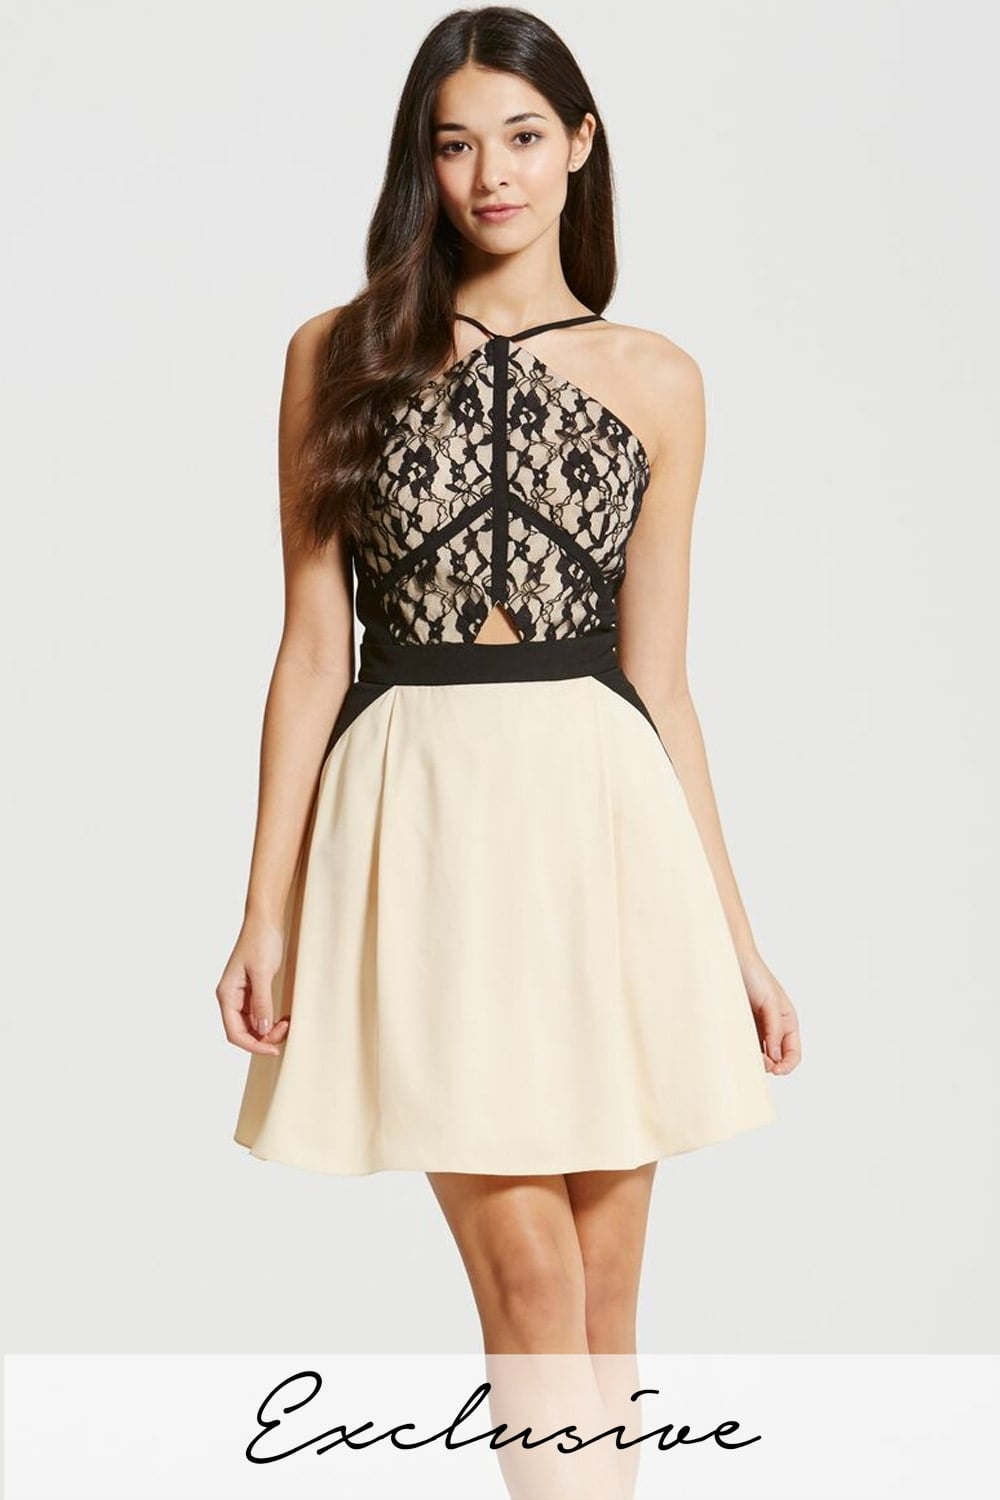 The touches of black lace against the beige background of this dress make it a girly and romantic look you can wear year round. The Trimmed In Lace Beige and Black A-Line Dress is a Cute Black and Beige Dress, Black and Beige Lace Dress, Black and Beige.